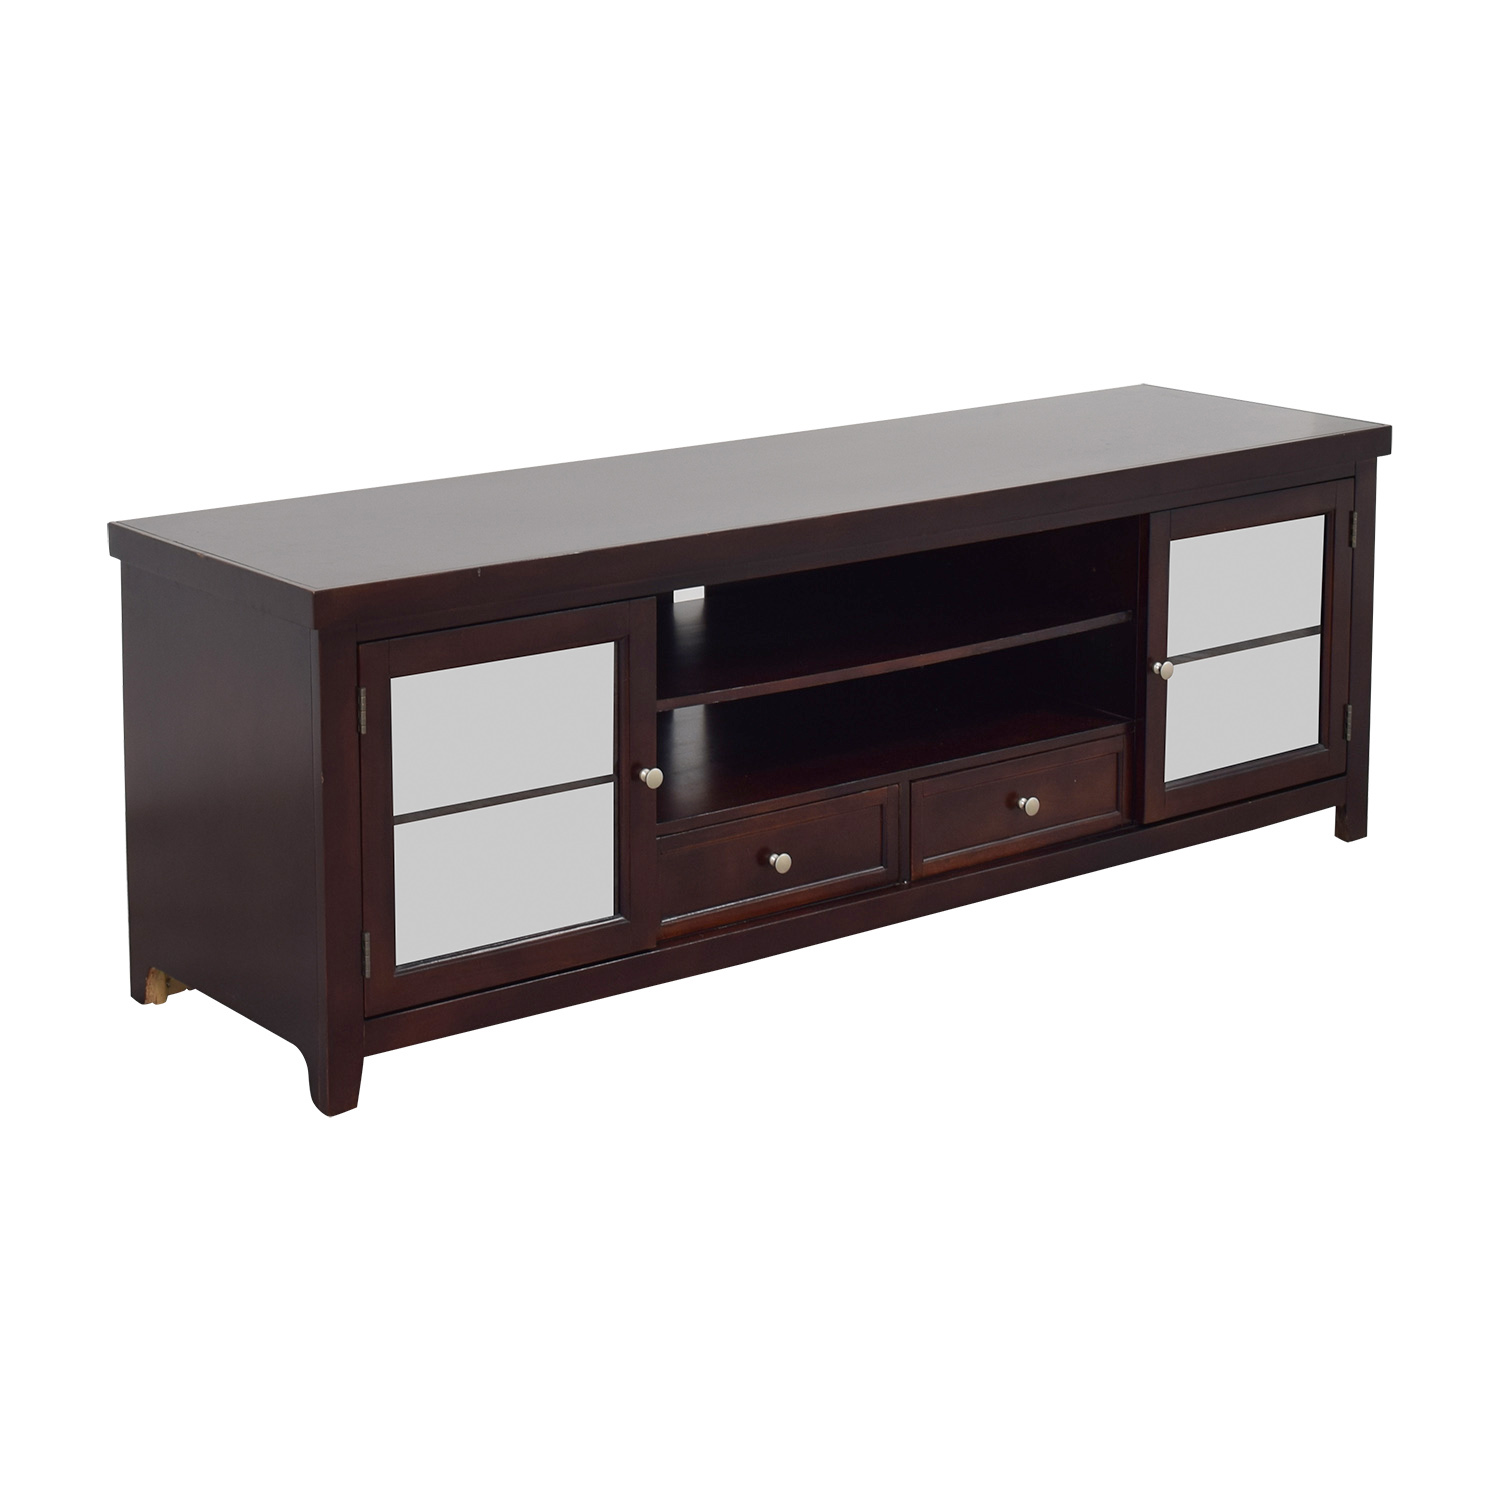 39% OFF Living Spaces Living Spaces Wood and Glass TV Stand